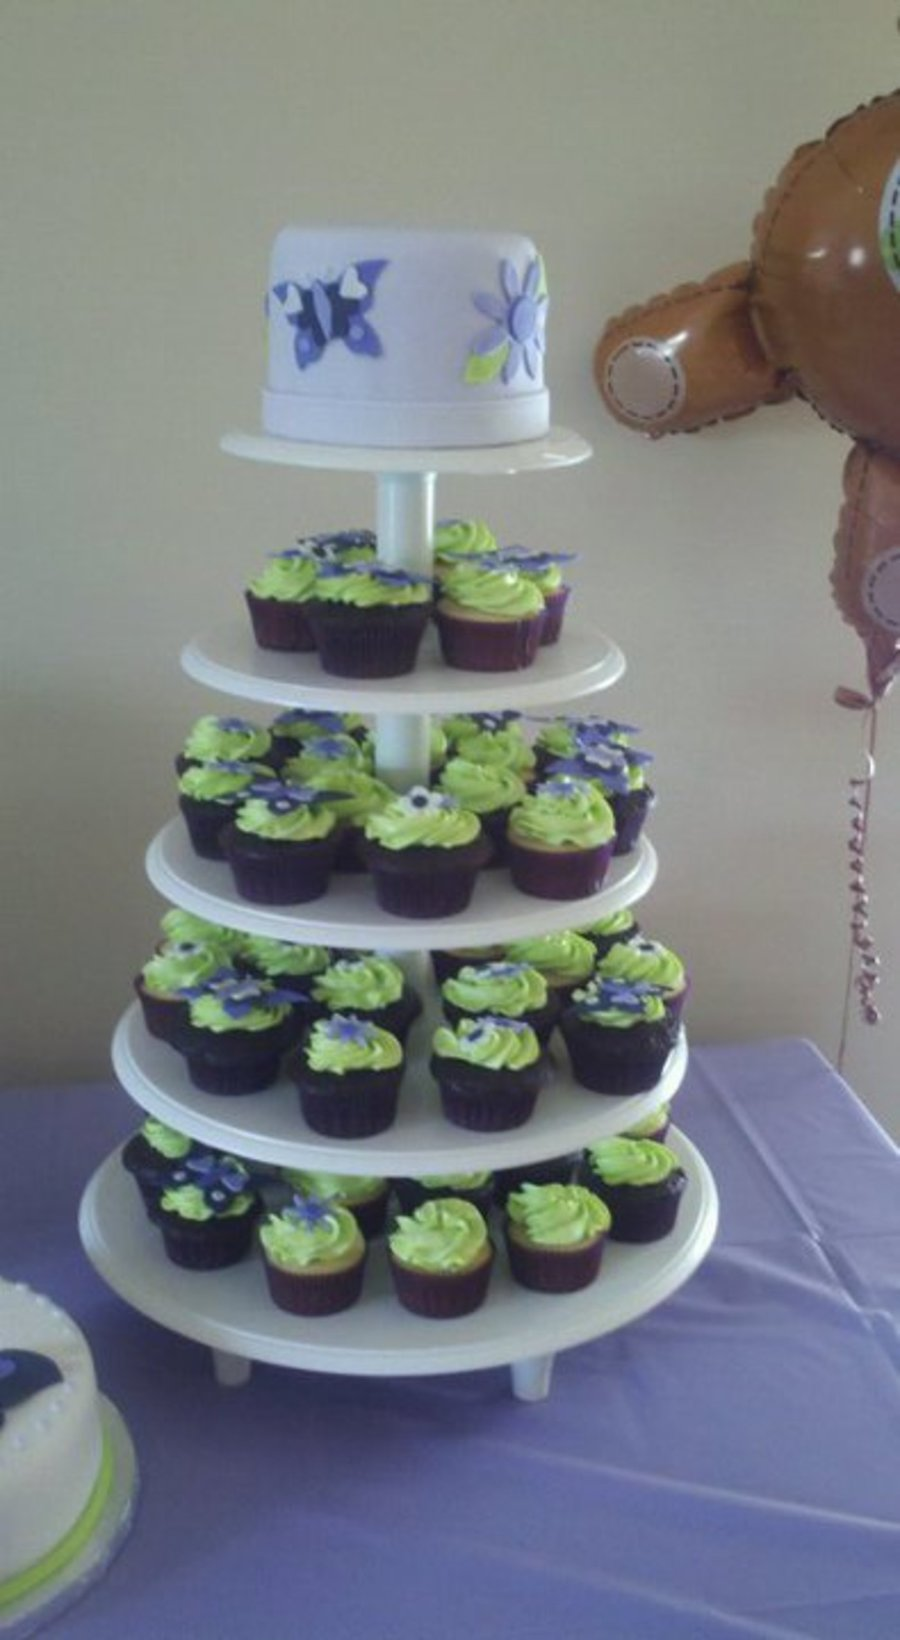 Cupcake Tower For A Baby Shower on Cake Central